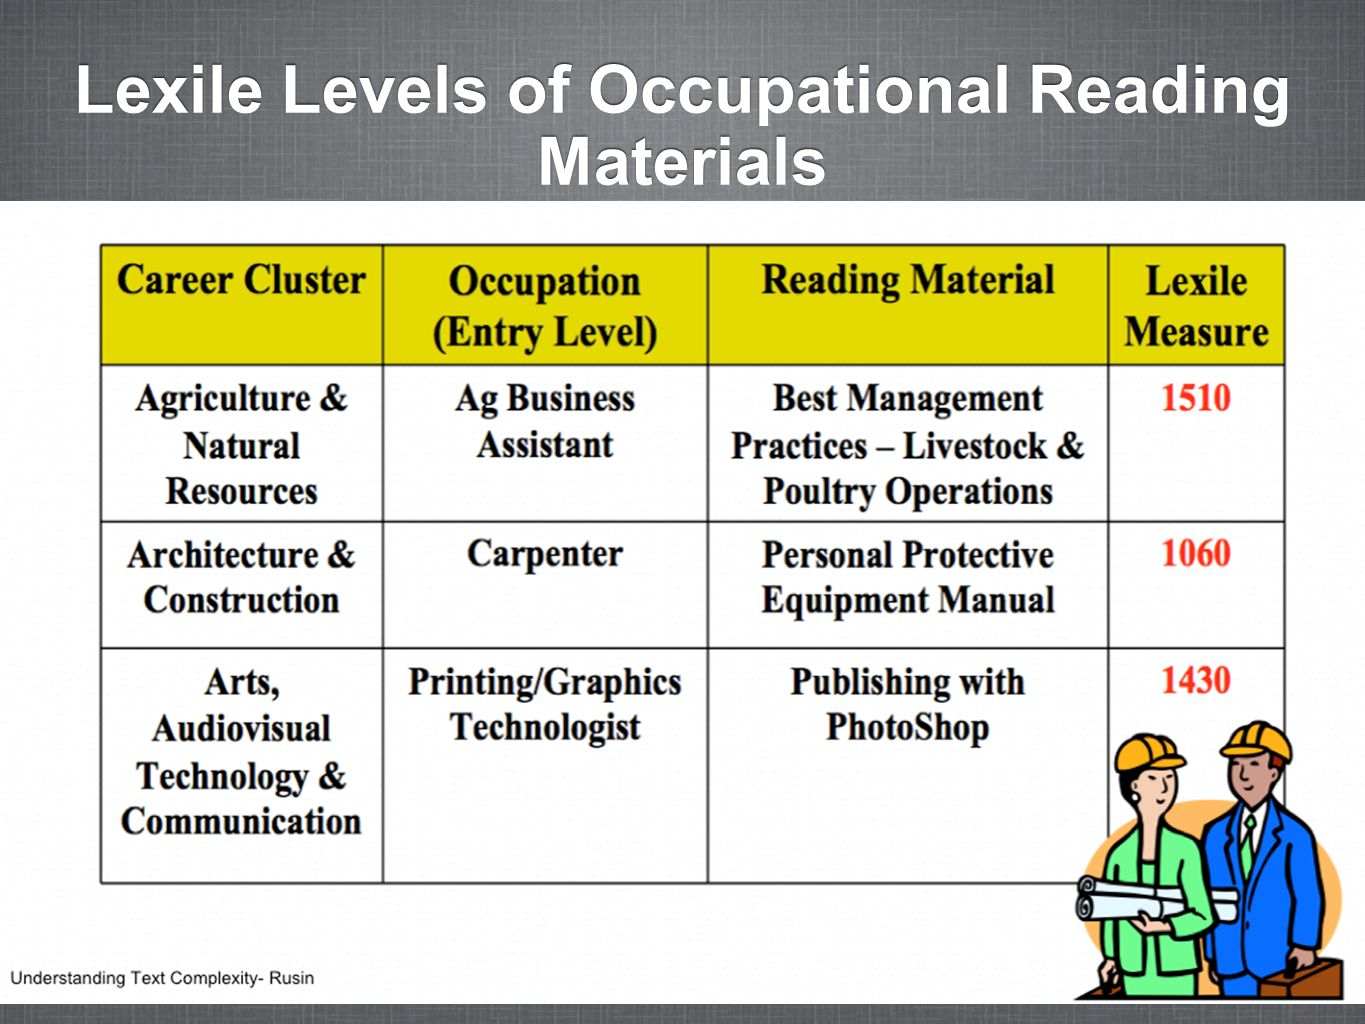 Lexile Levels of Occupational Reading Materials